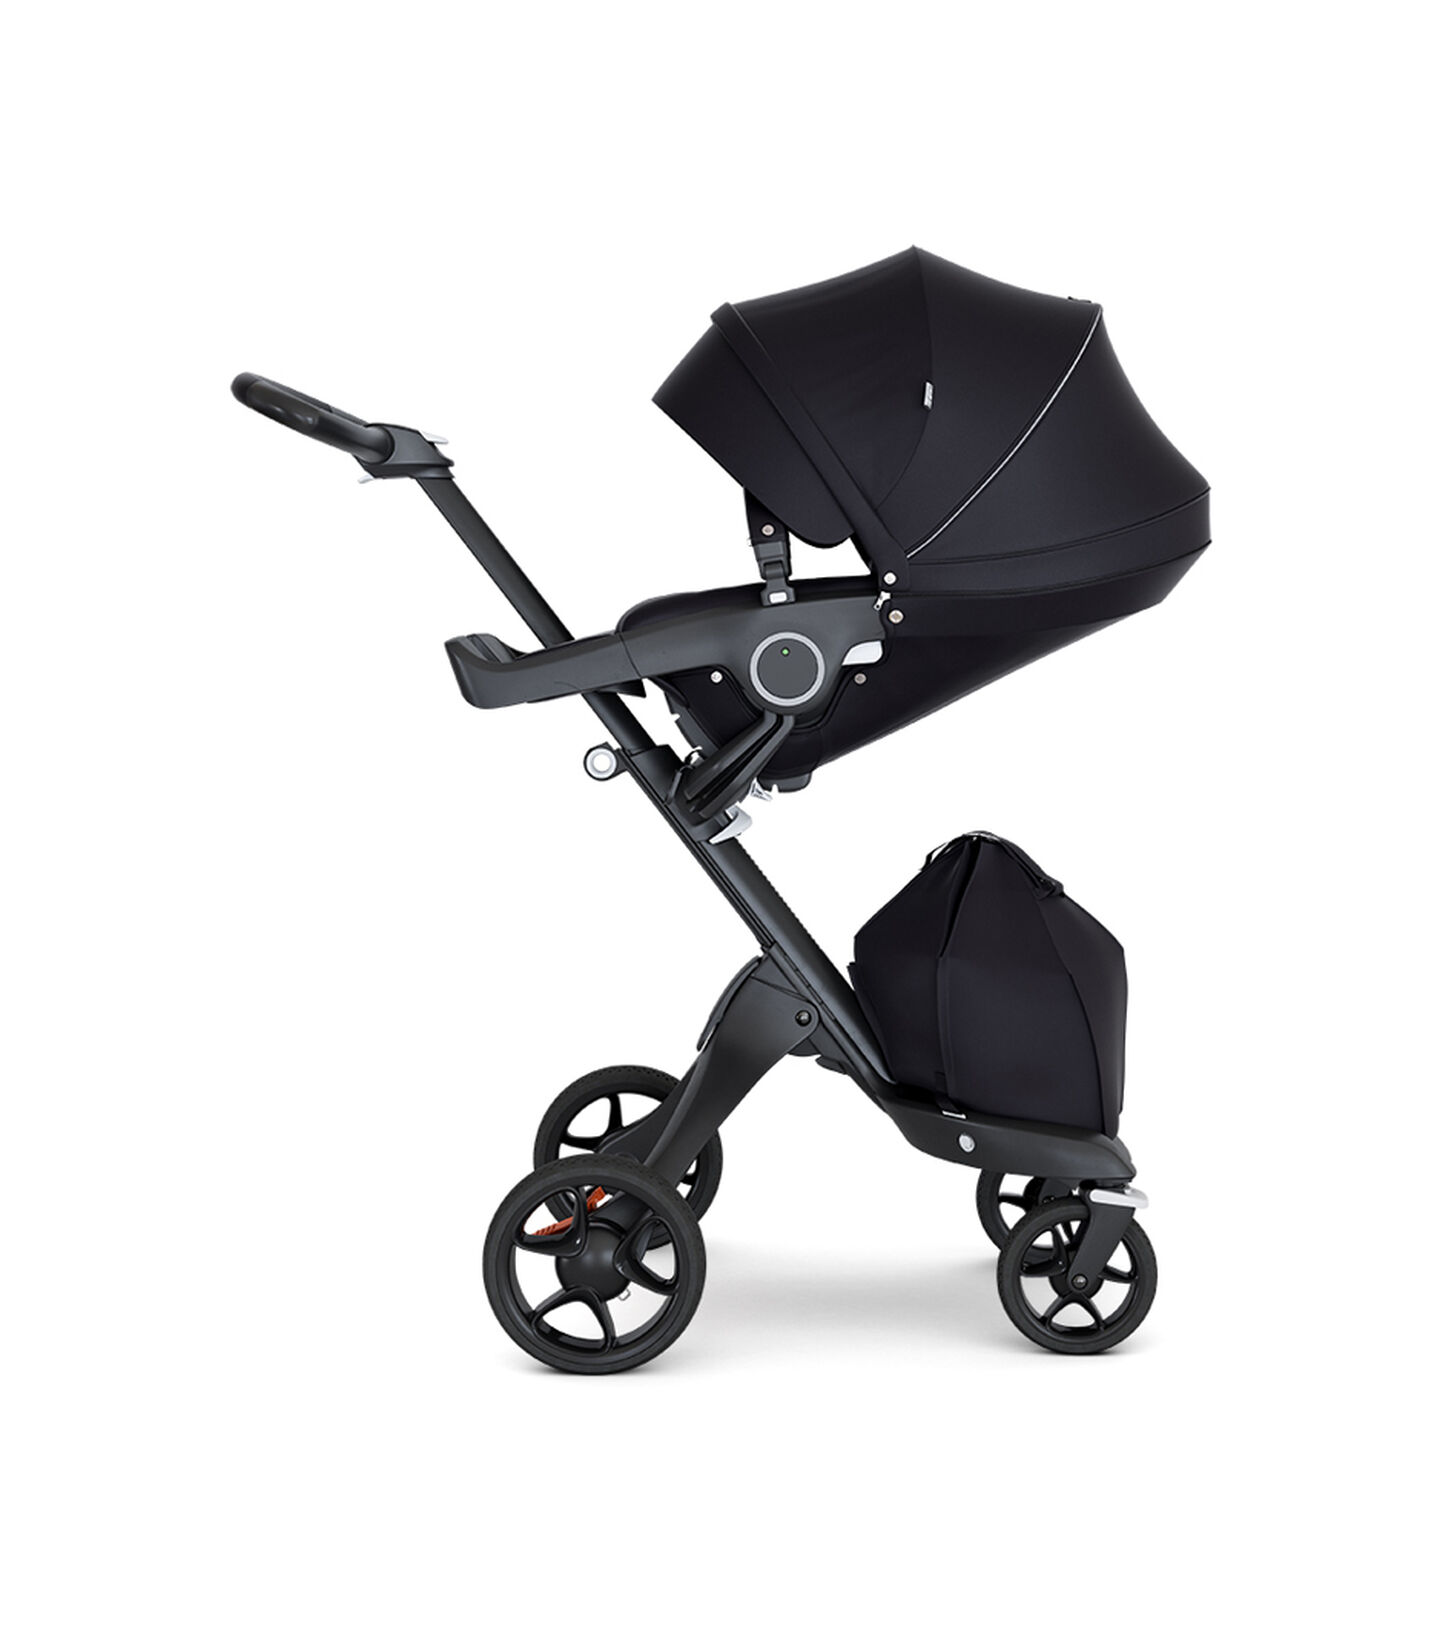 Stokke® Xplory® with Black Chassis and Leatherette Black handle. Stokke® Stroller Seat Black with extended canopy.